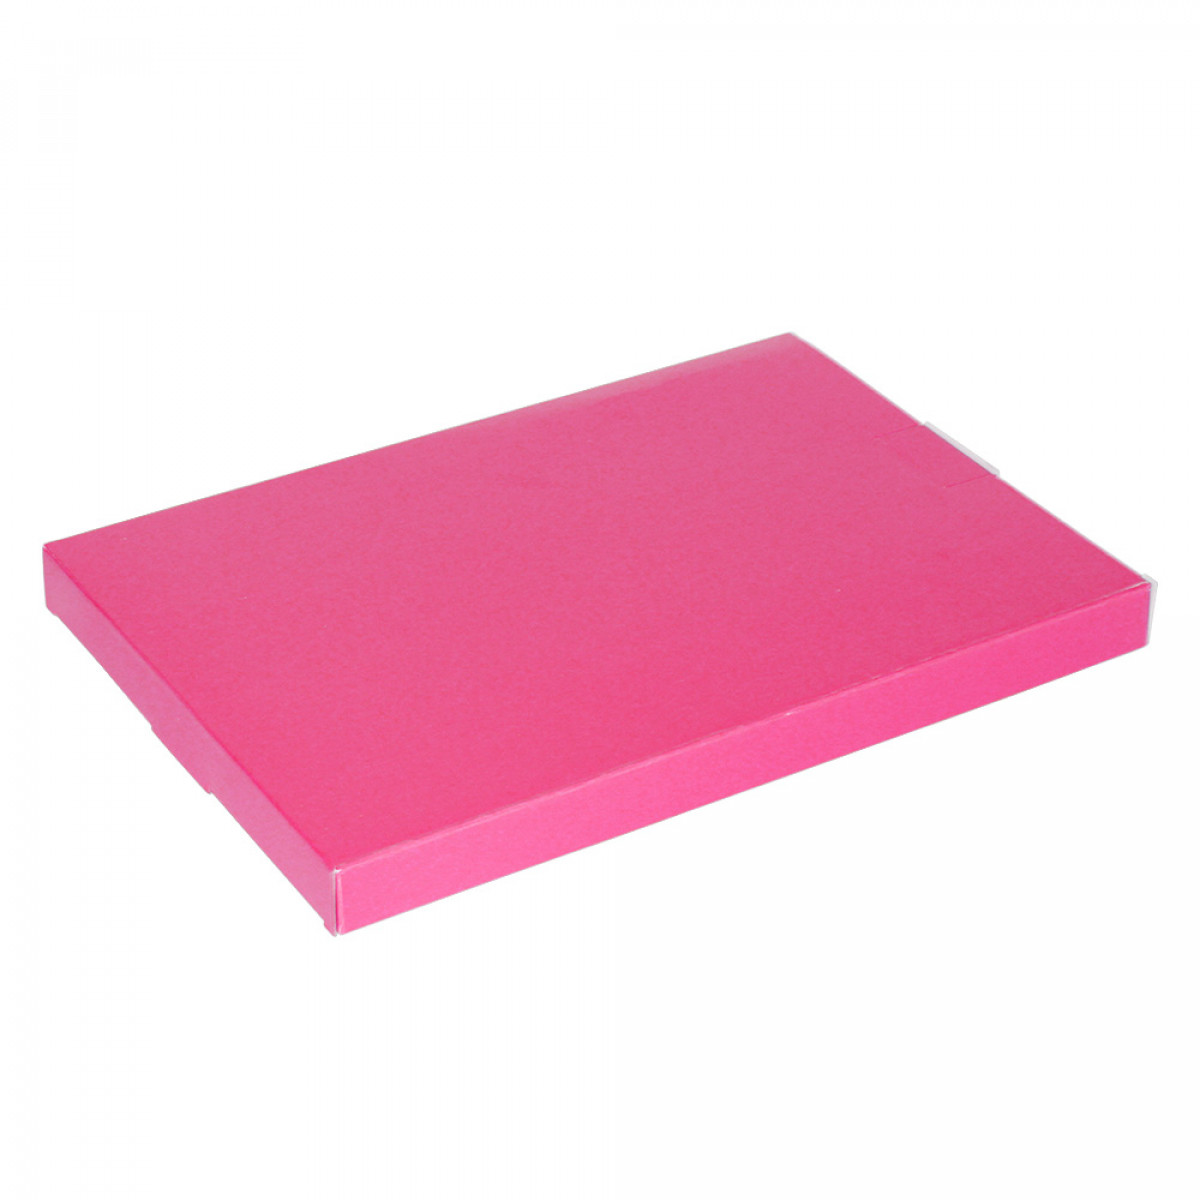 Brievenbusdoos 350x240x29mm, Roze